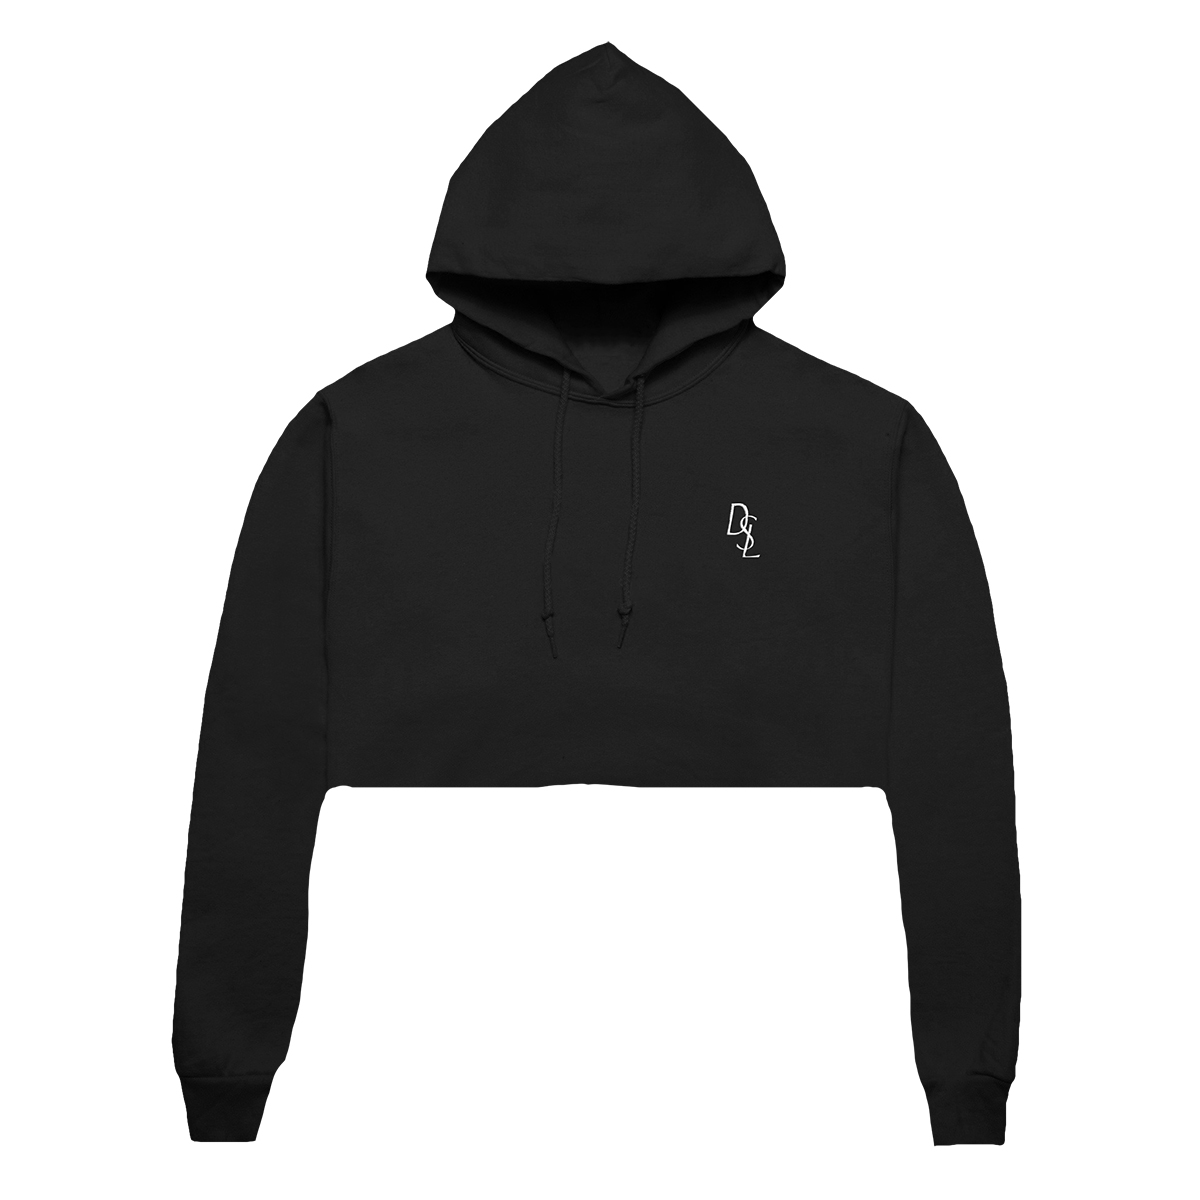 DSL Embroidered Crop Hoodie [Black/White]